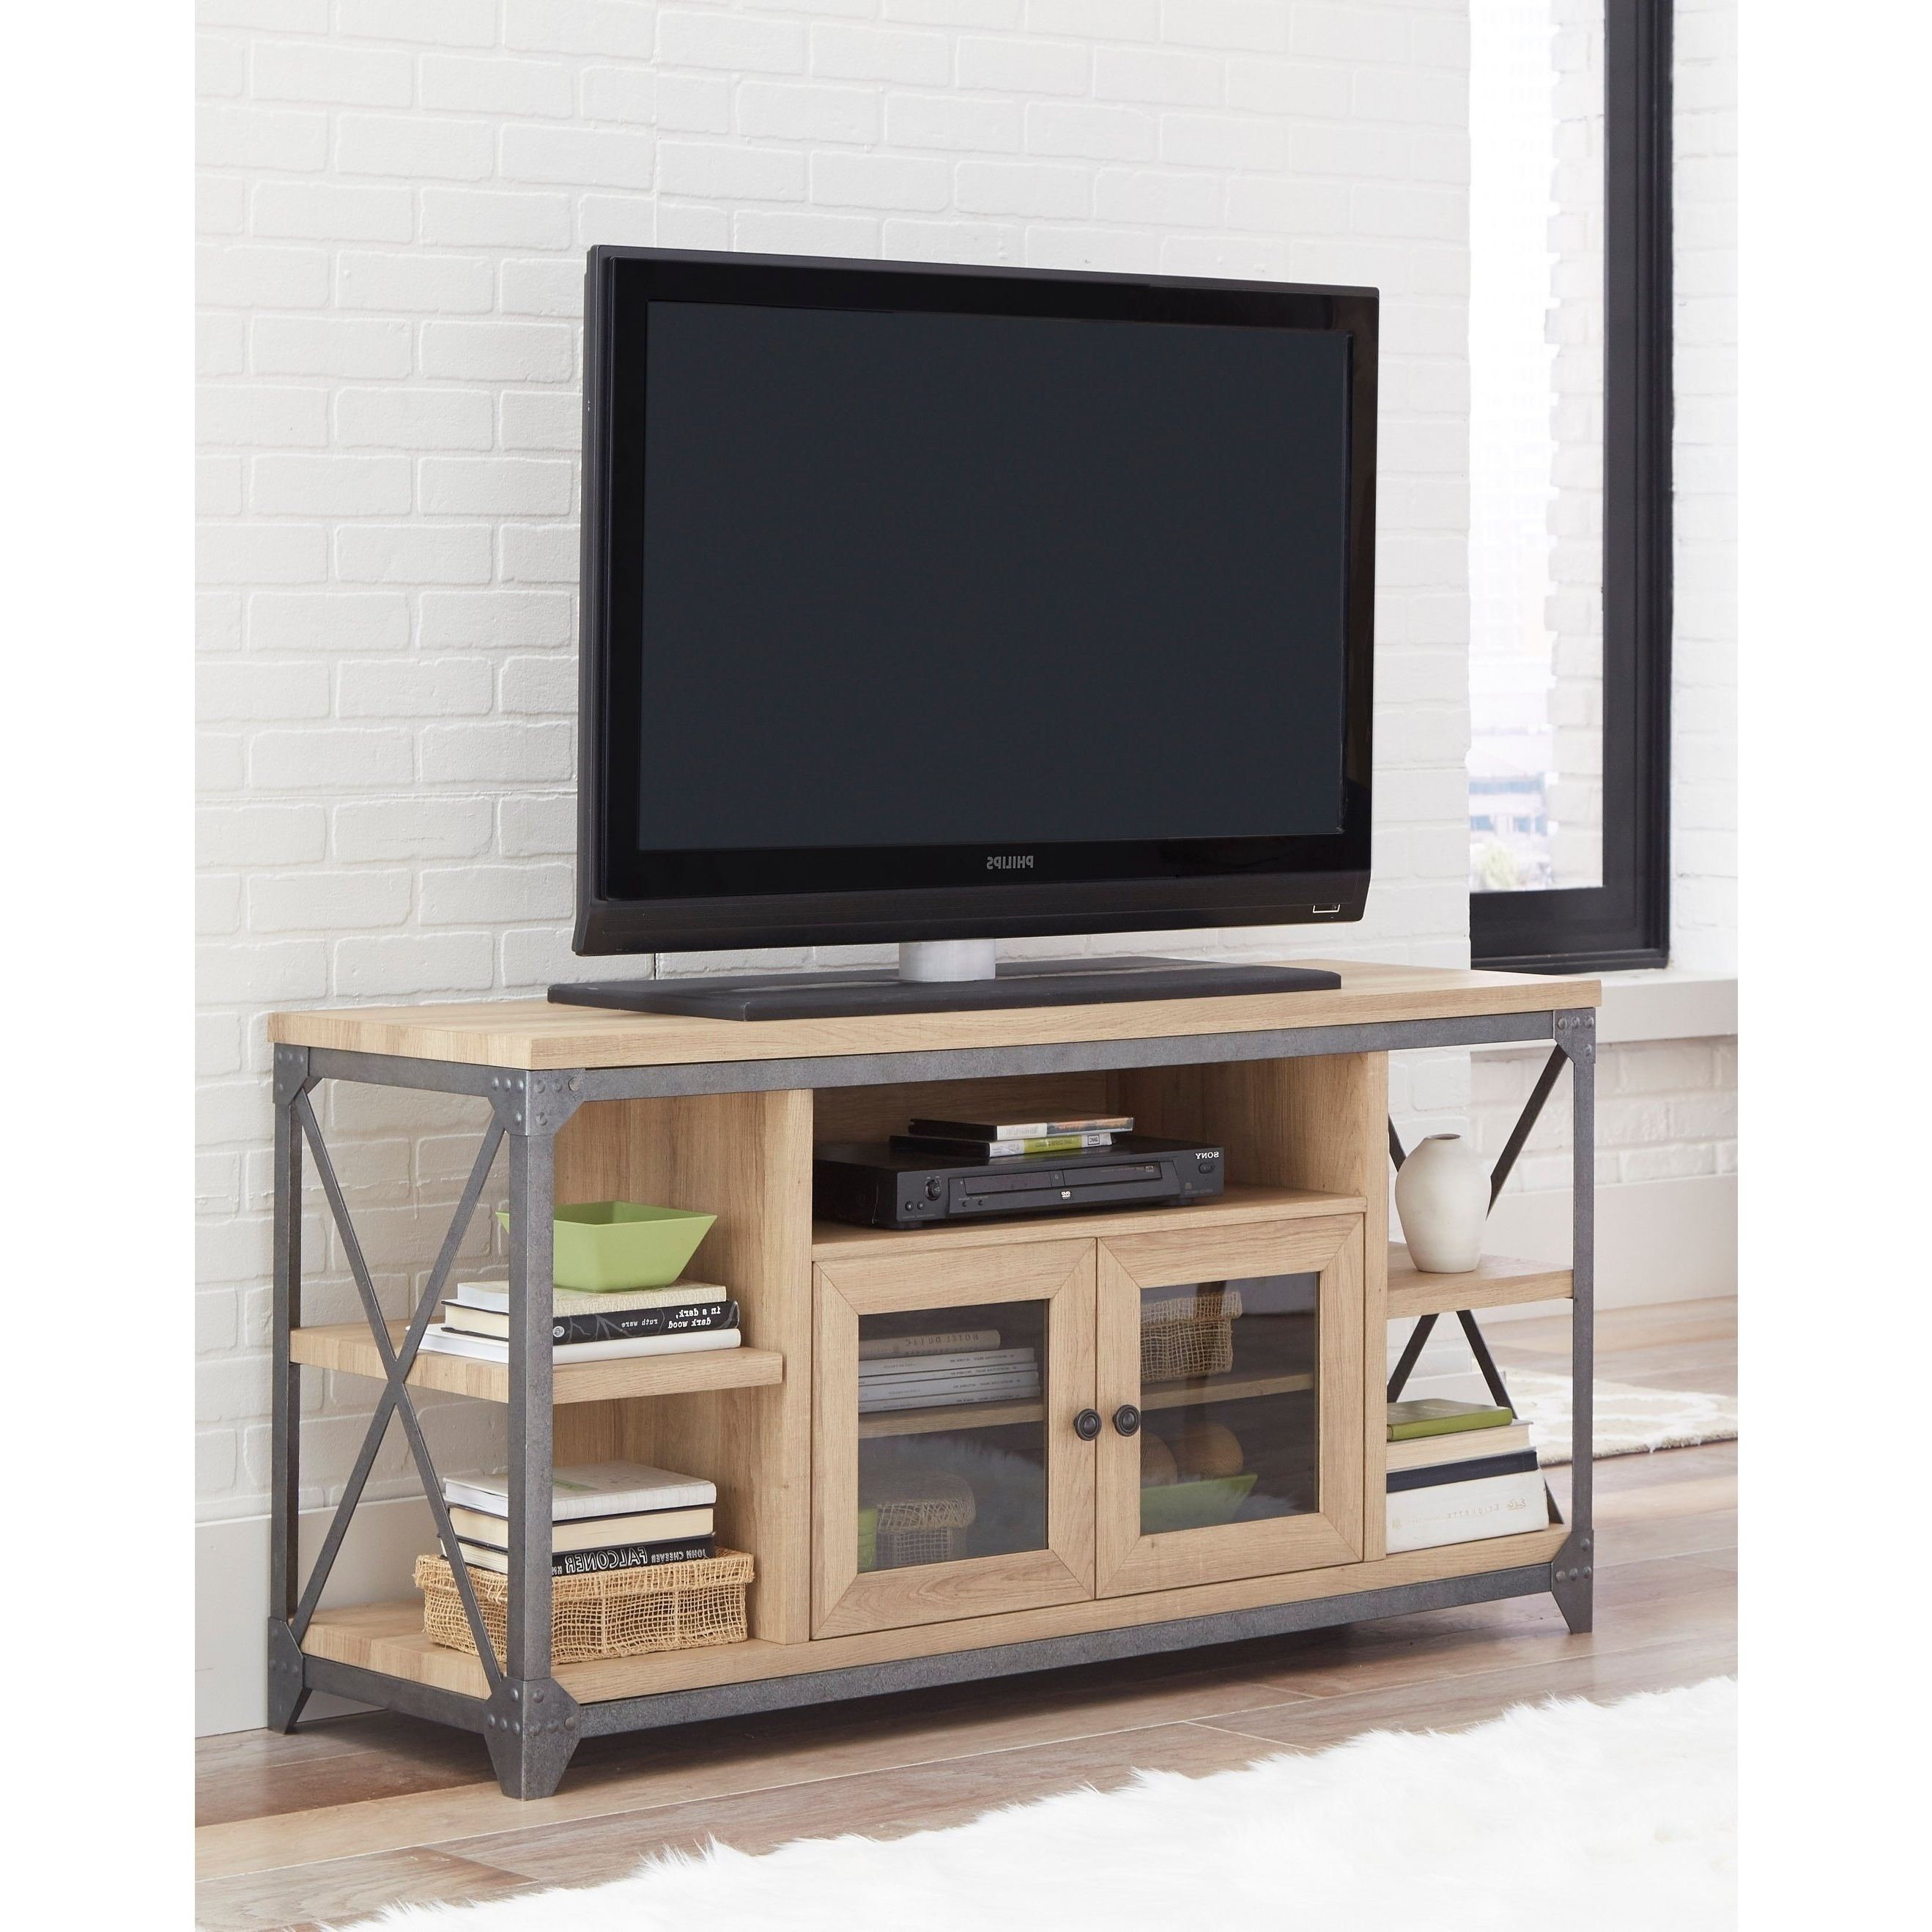 Wood And Metal Tv Stands Inside Most Popular Shop Wood And Metal Tv Stand With 5 Shelves, Oak Brown And Gray – On (View 14 of 20)